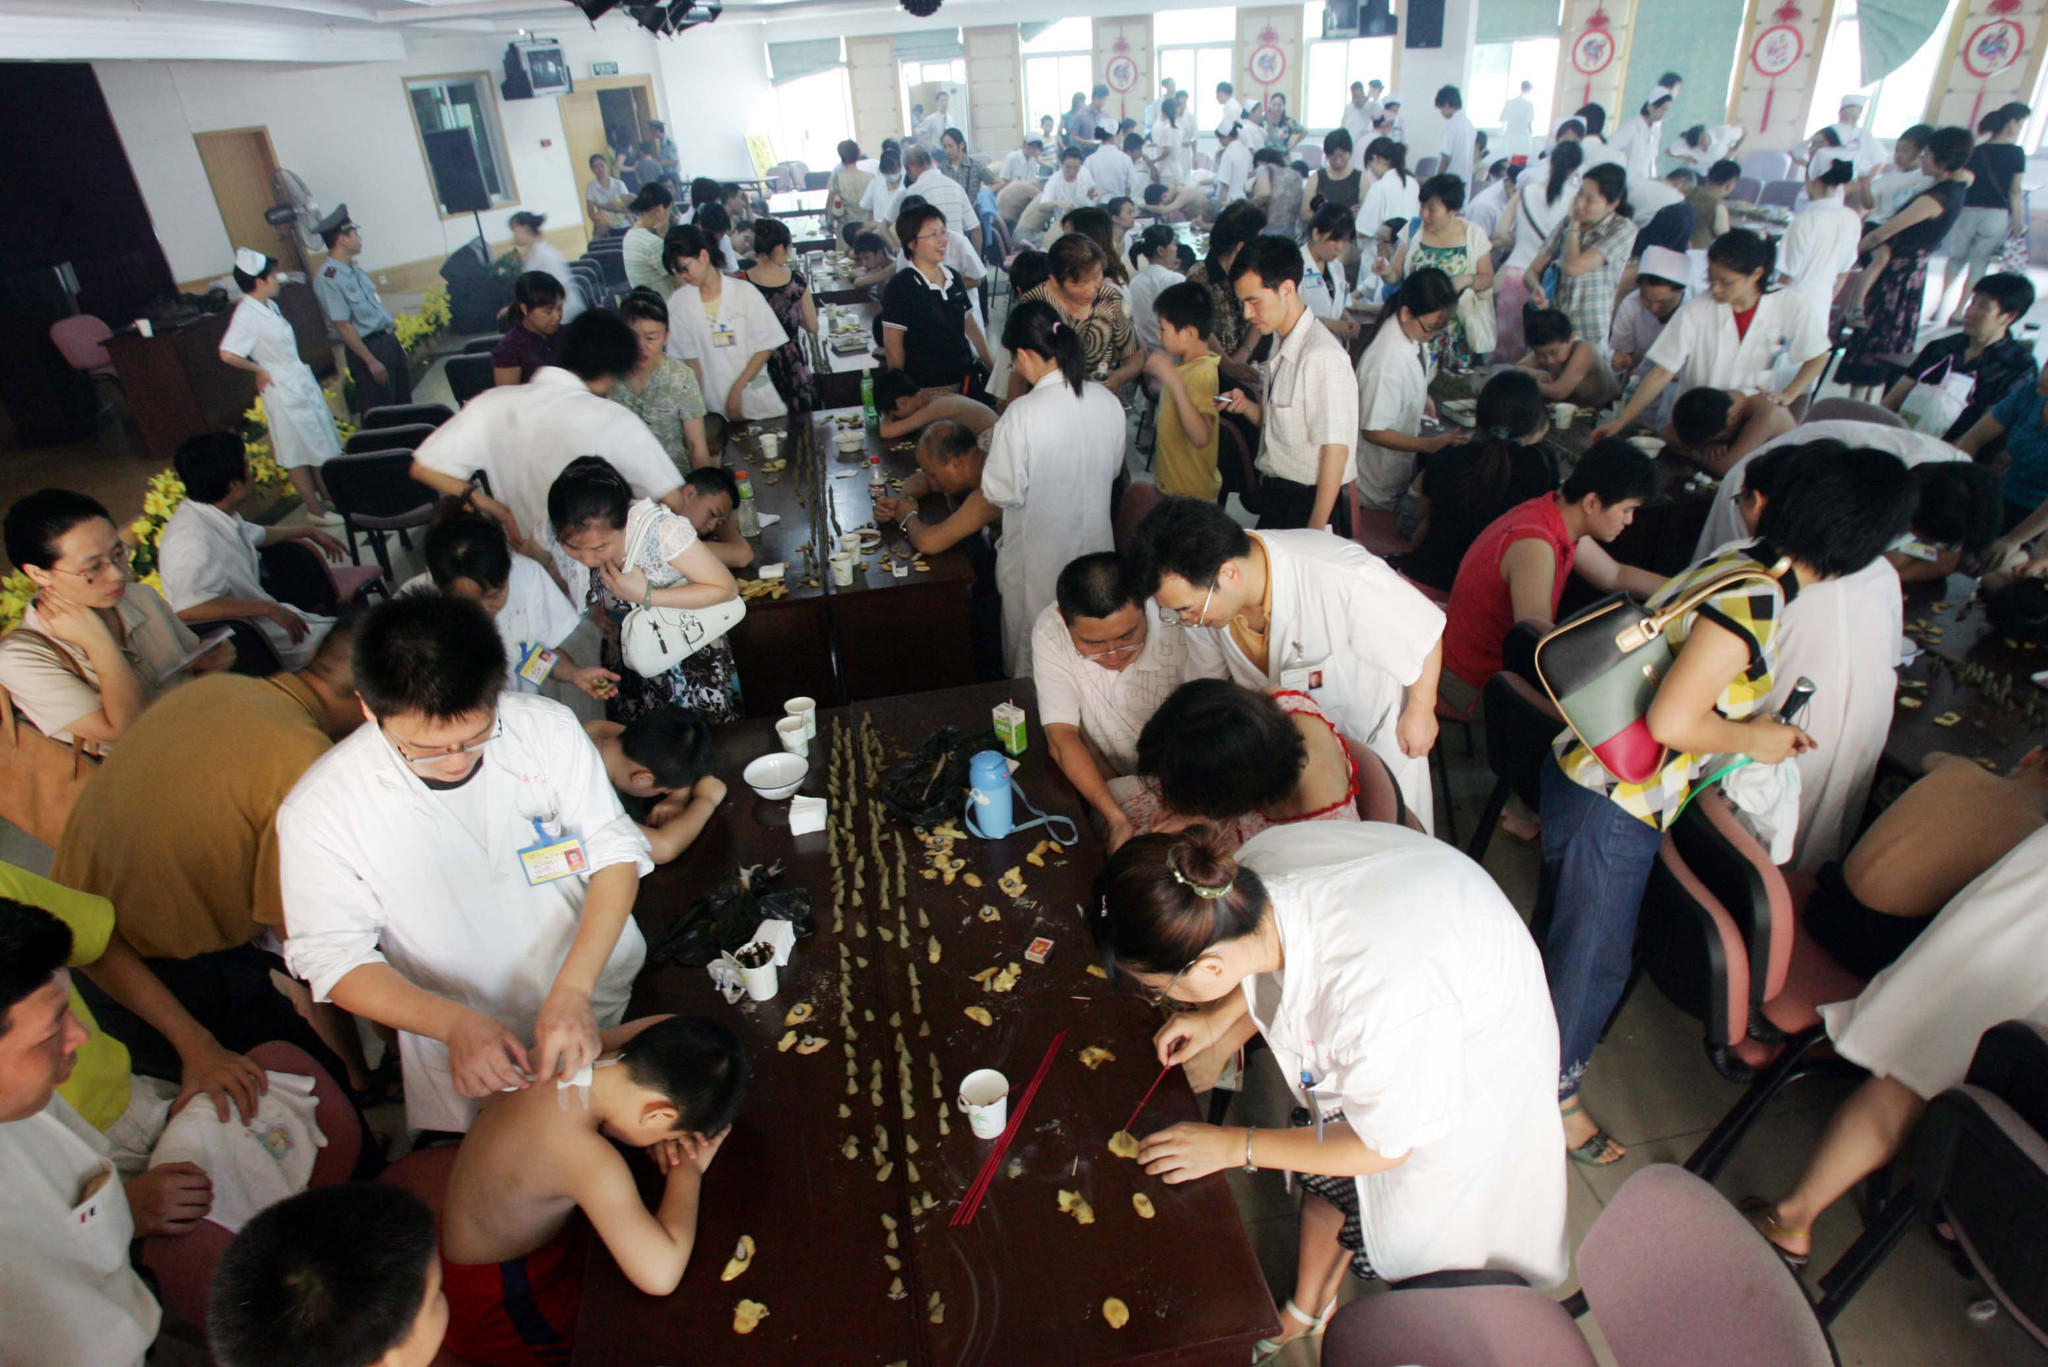 Doctors prepare herbal remedies during a mass treatment at a traditional Chinese medicine hospital in Fuzhou in southeast China's Fujian province.